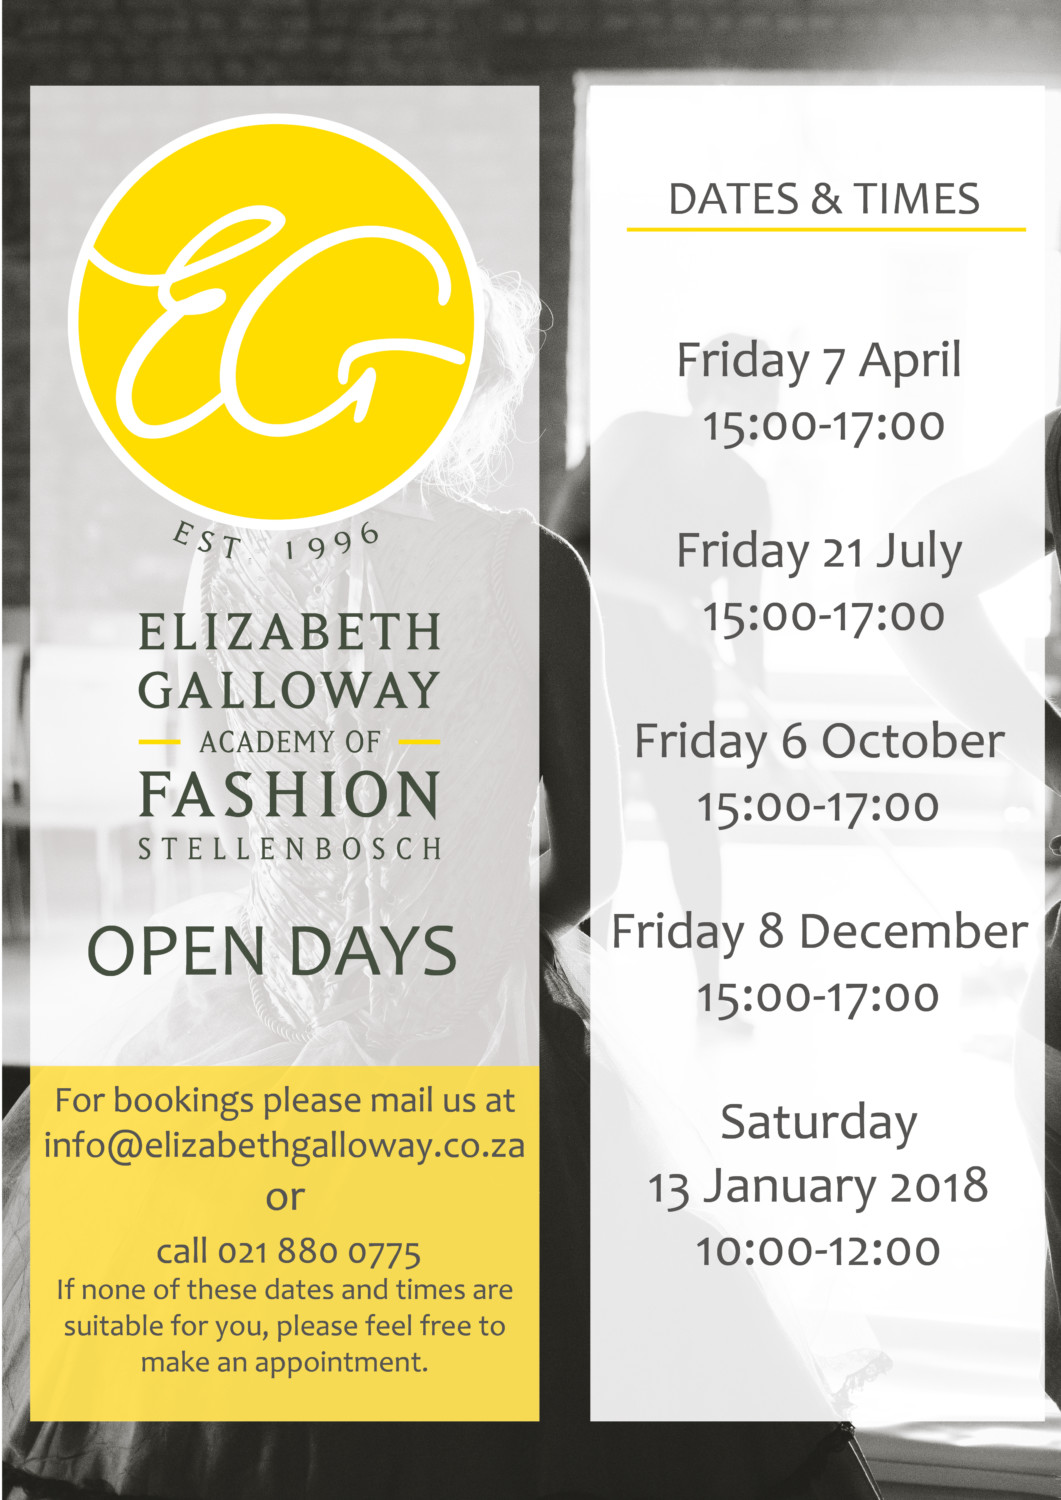 Elizabeth Galloway Open Days 2017